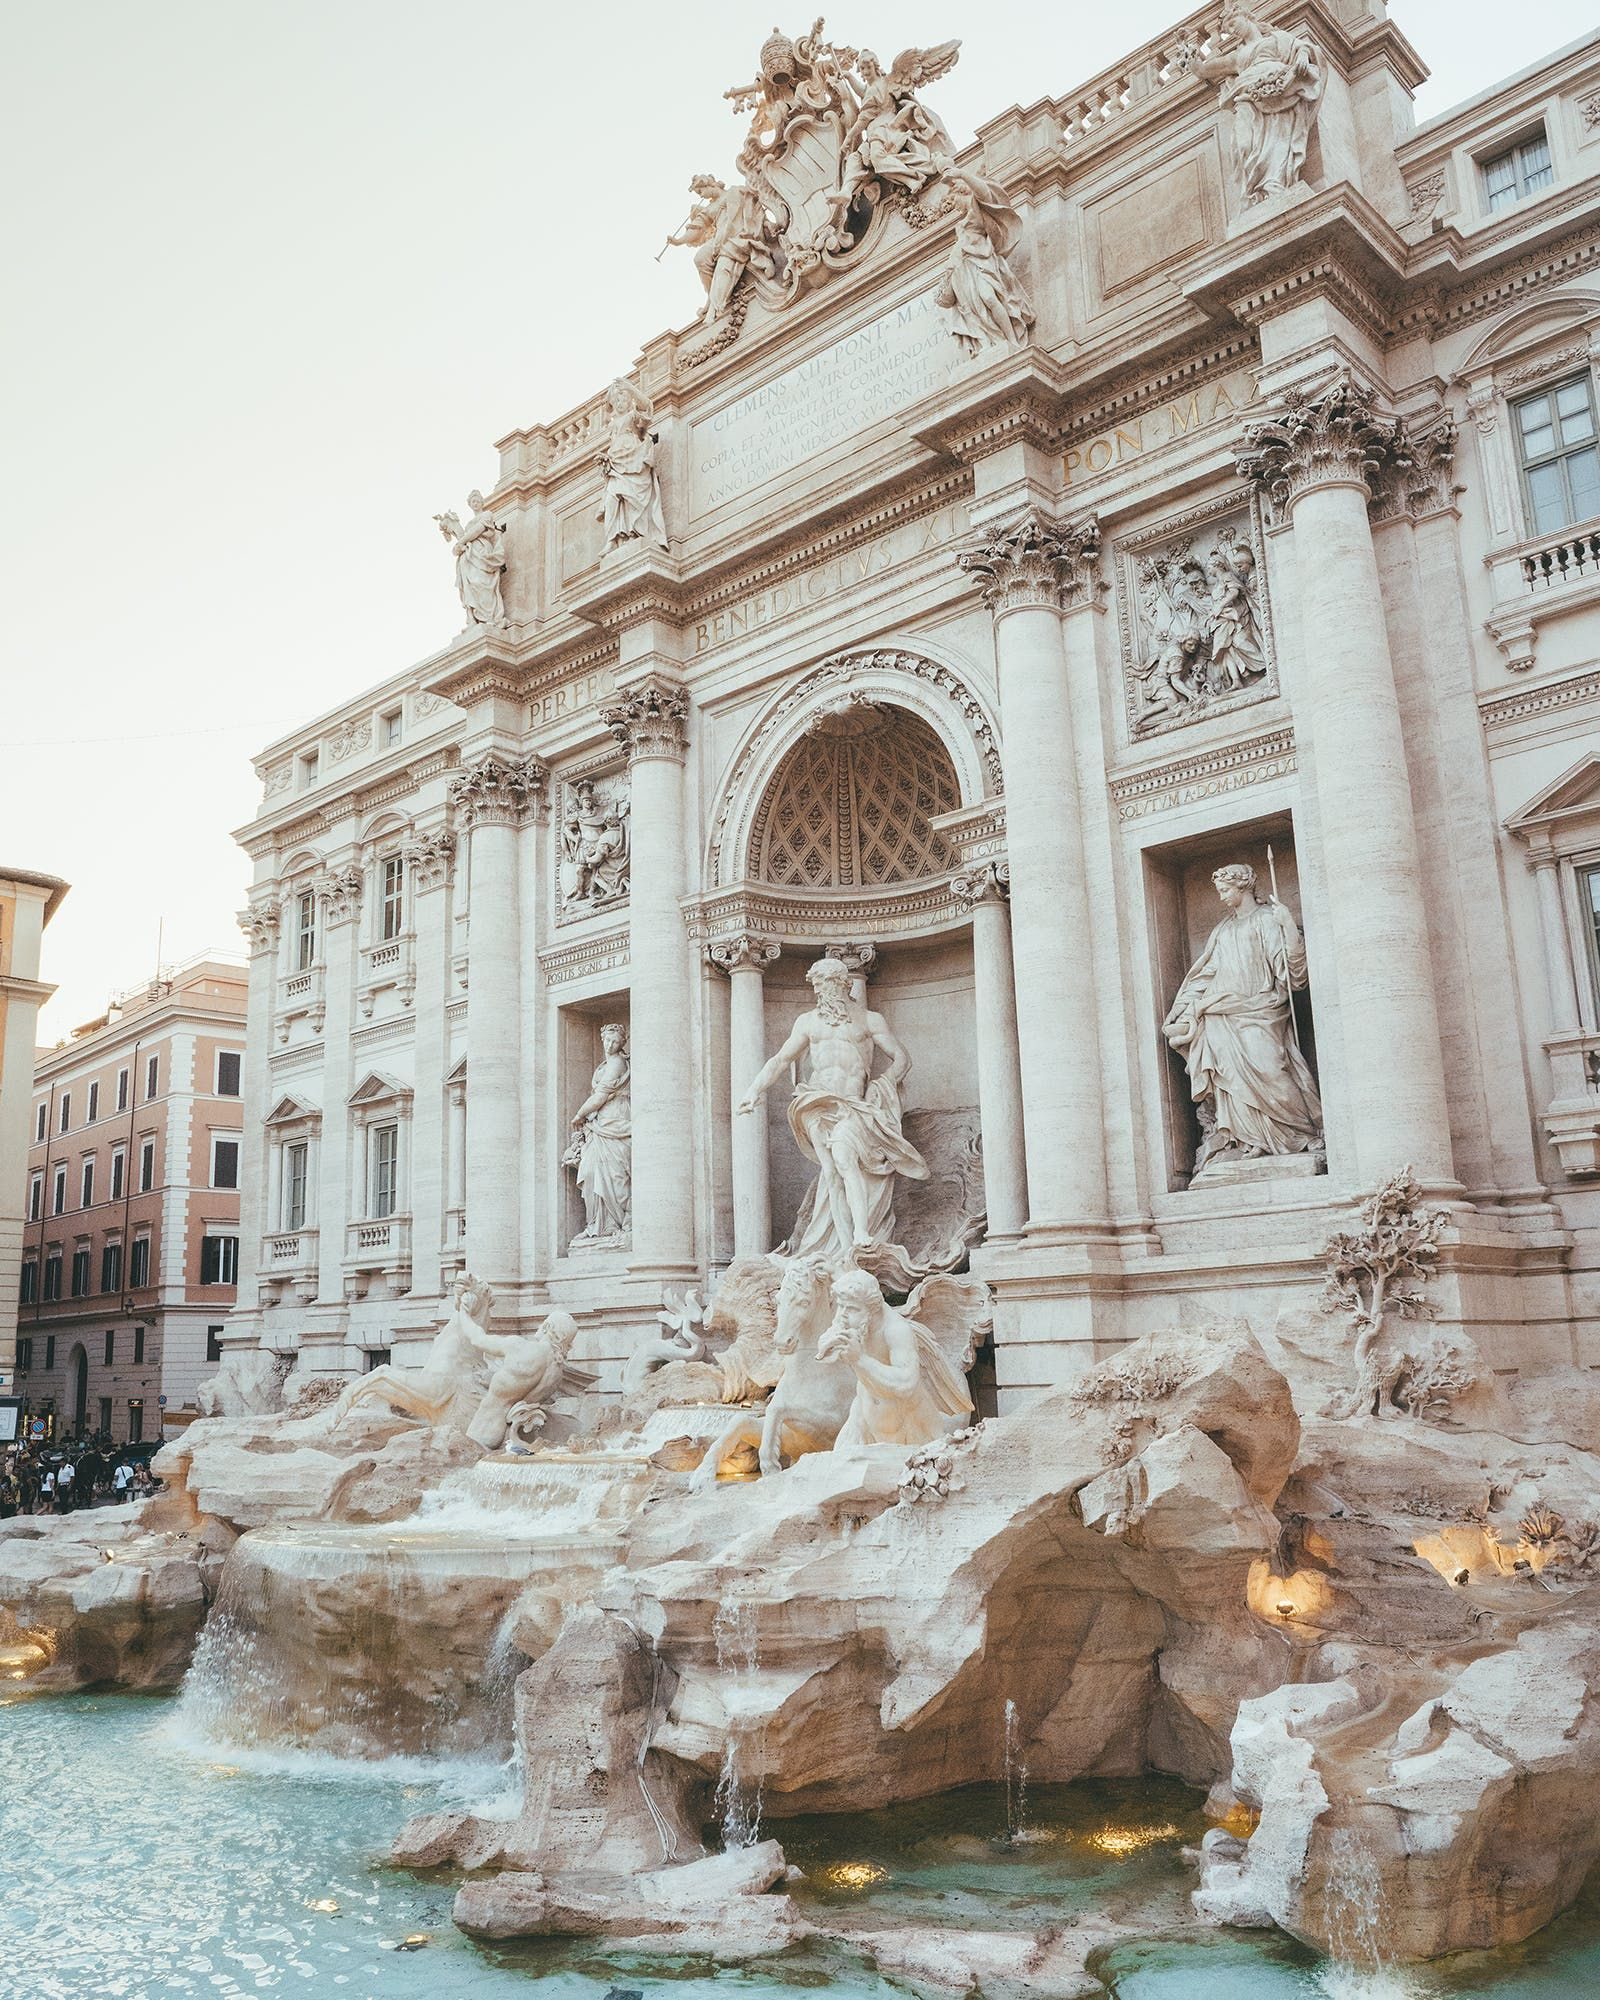 996 Best Archi Architecture Images On Pinterest: The Top 8 Most Instagrammable Places In Rome